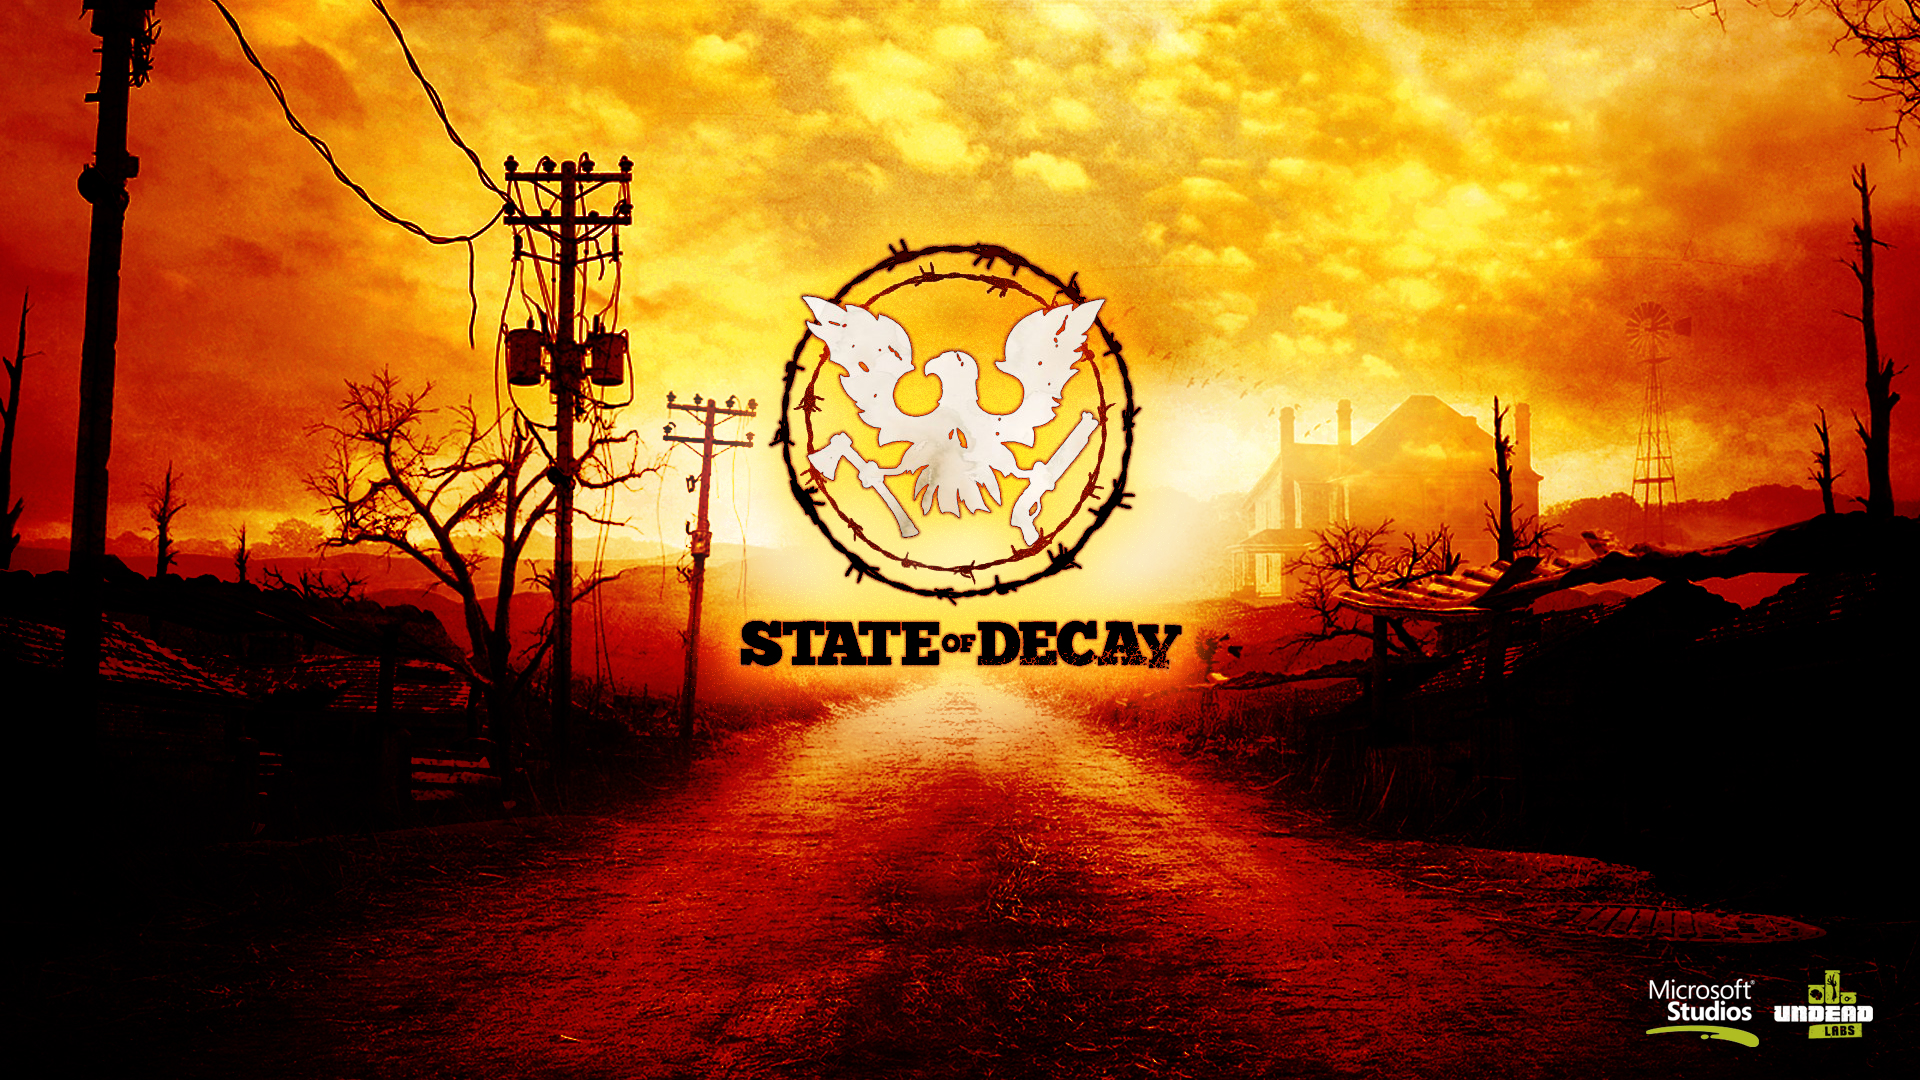 State Of Decay Wallpaper By Christian2506 On Deviantart